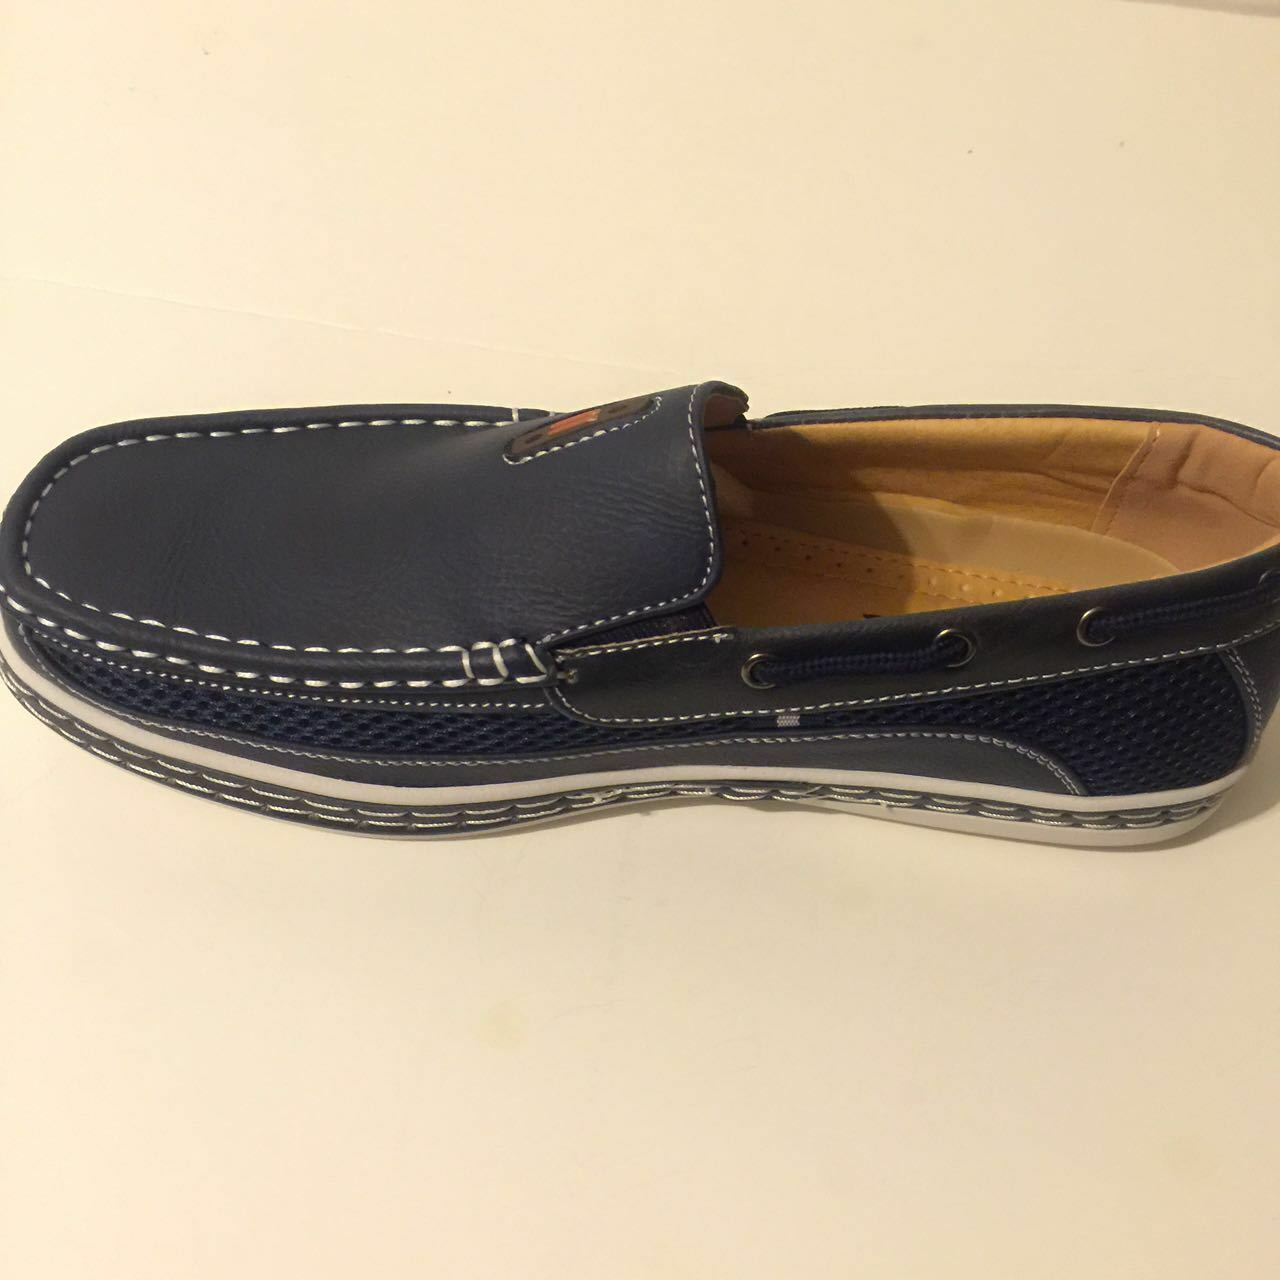 d60c94251c0 ... Men Brixton Boat Shoes Driving Moccasins Slip On Loafers Size 7.5--13  фото ...